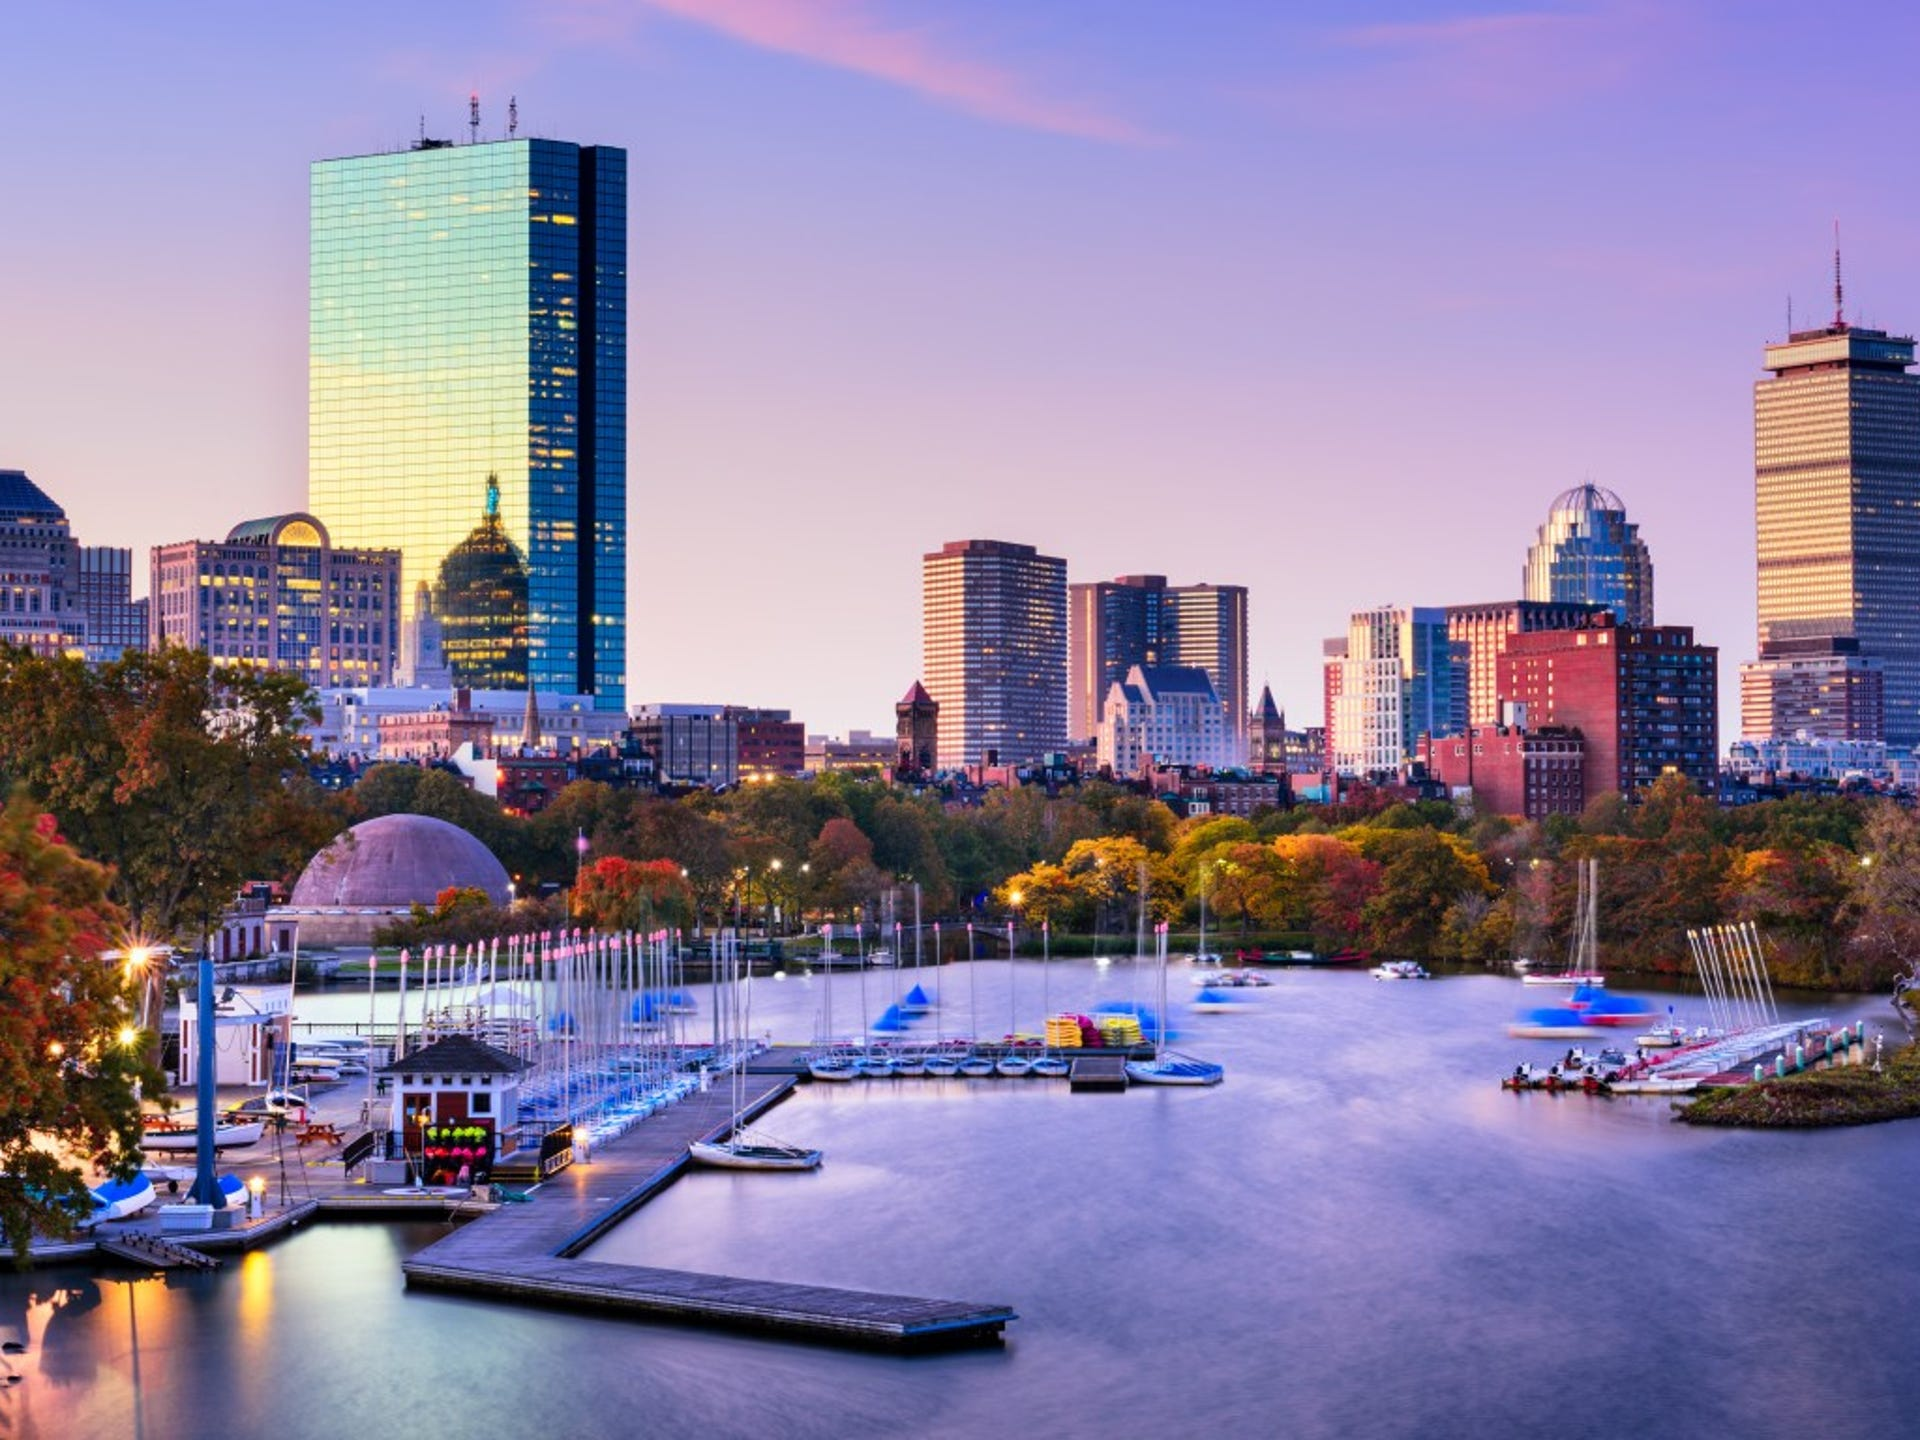 14. Boston, MA     • Total properties at risk of hurricane damage:  126,196     • Reconstruction cost value of properties:  $34.9 billion     • Metro area population:  4.9 million     • Recent severe hurricane:  Bob (1991) Though Boston may not immediately spring to mind when thinking of hurricanes, the city's proximity to the Atlantic Ocean and high population density make it especially susceptible to damage from serious storms. In August 1991, Hurricane Bob caused $1.5 billion in damages across New England. The densely populated Boston metro area now has more than 126,000 homes at risk of significant damage from a storm surge.     ALSO READ: The Best and Worst Prepared States for Weather Emergencies